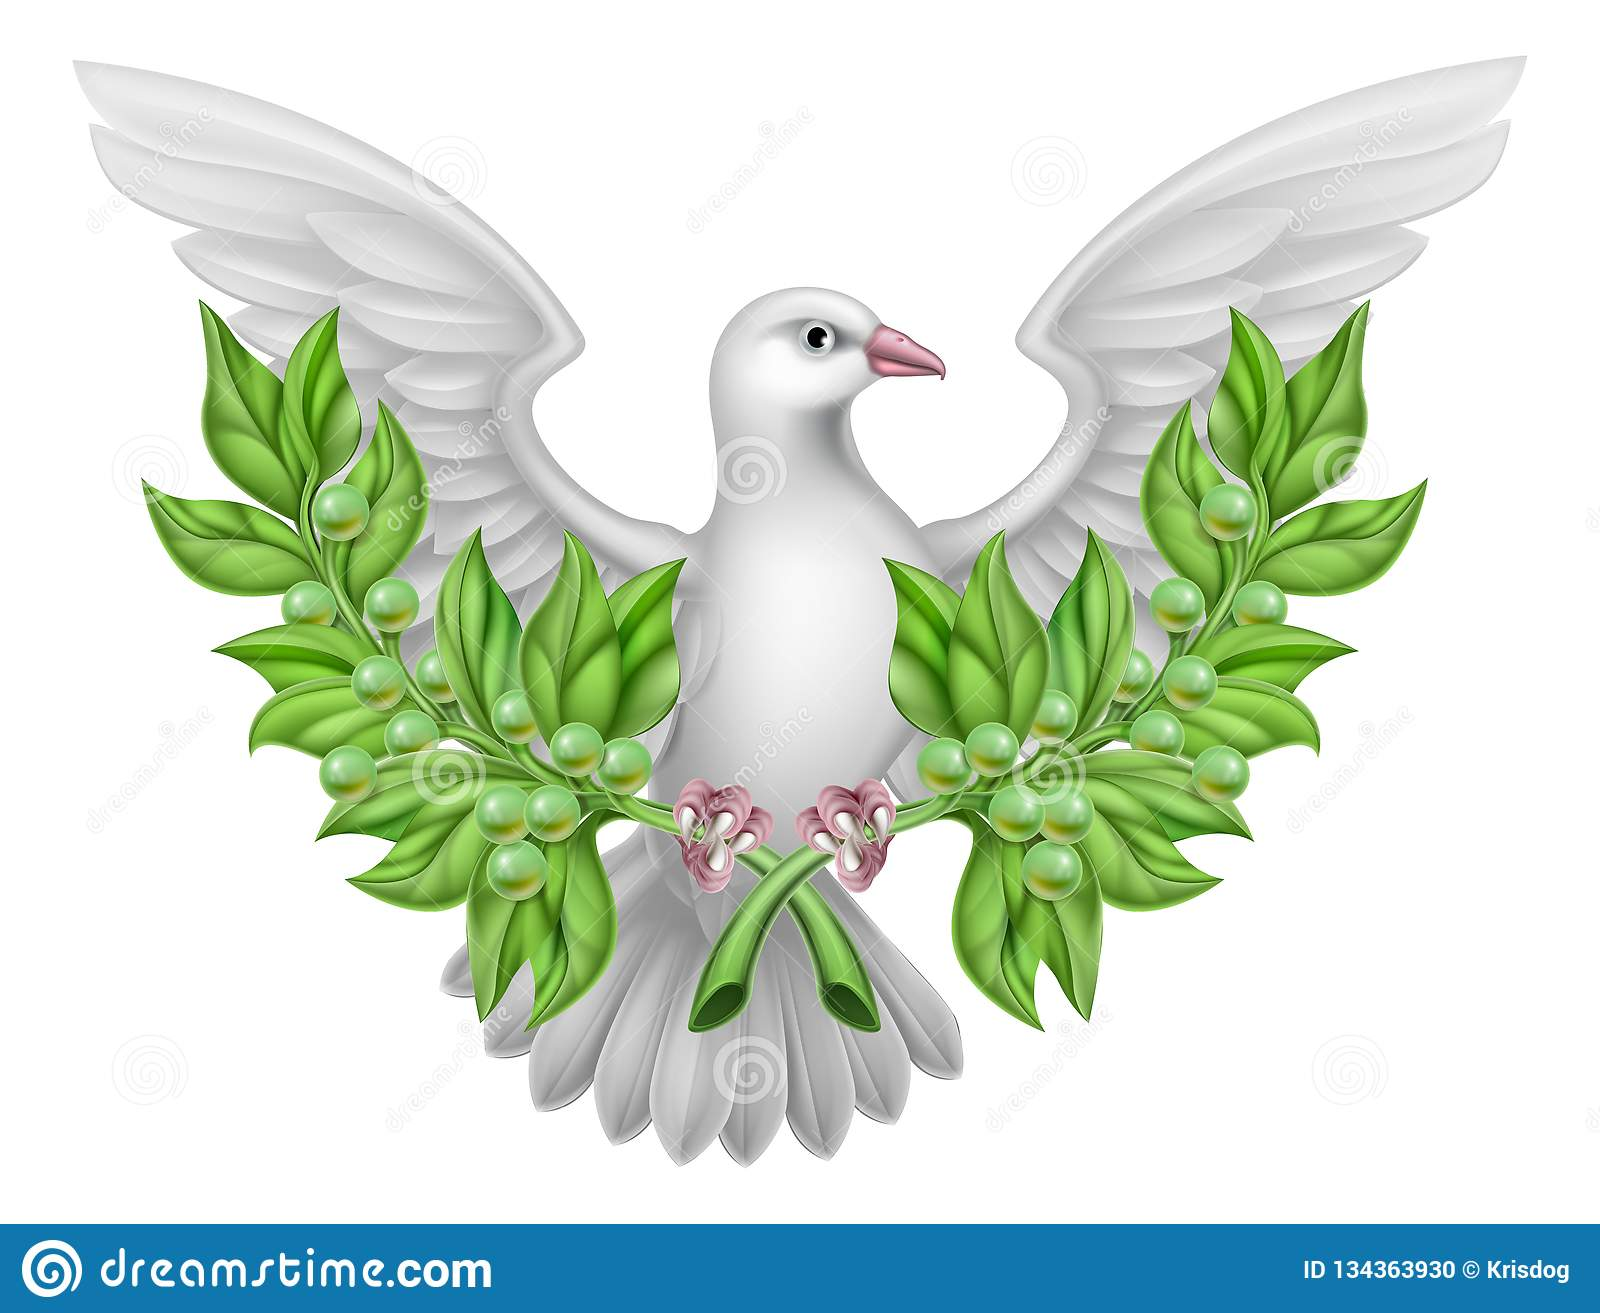 White Dove Peace With Olive Branch Stock Vector